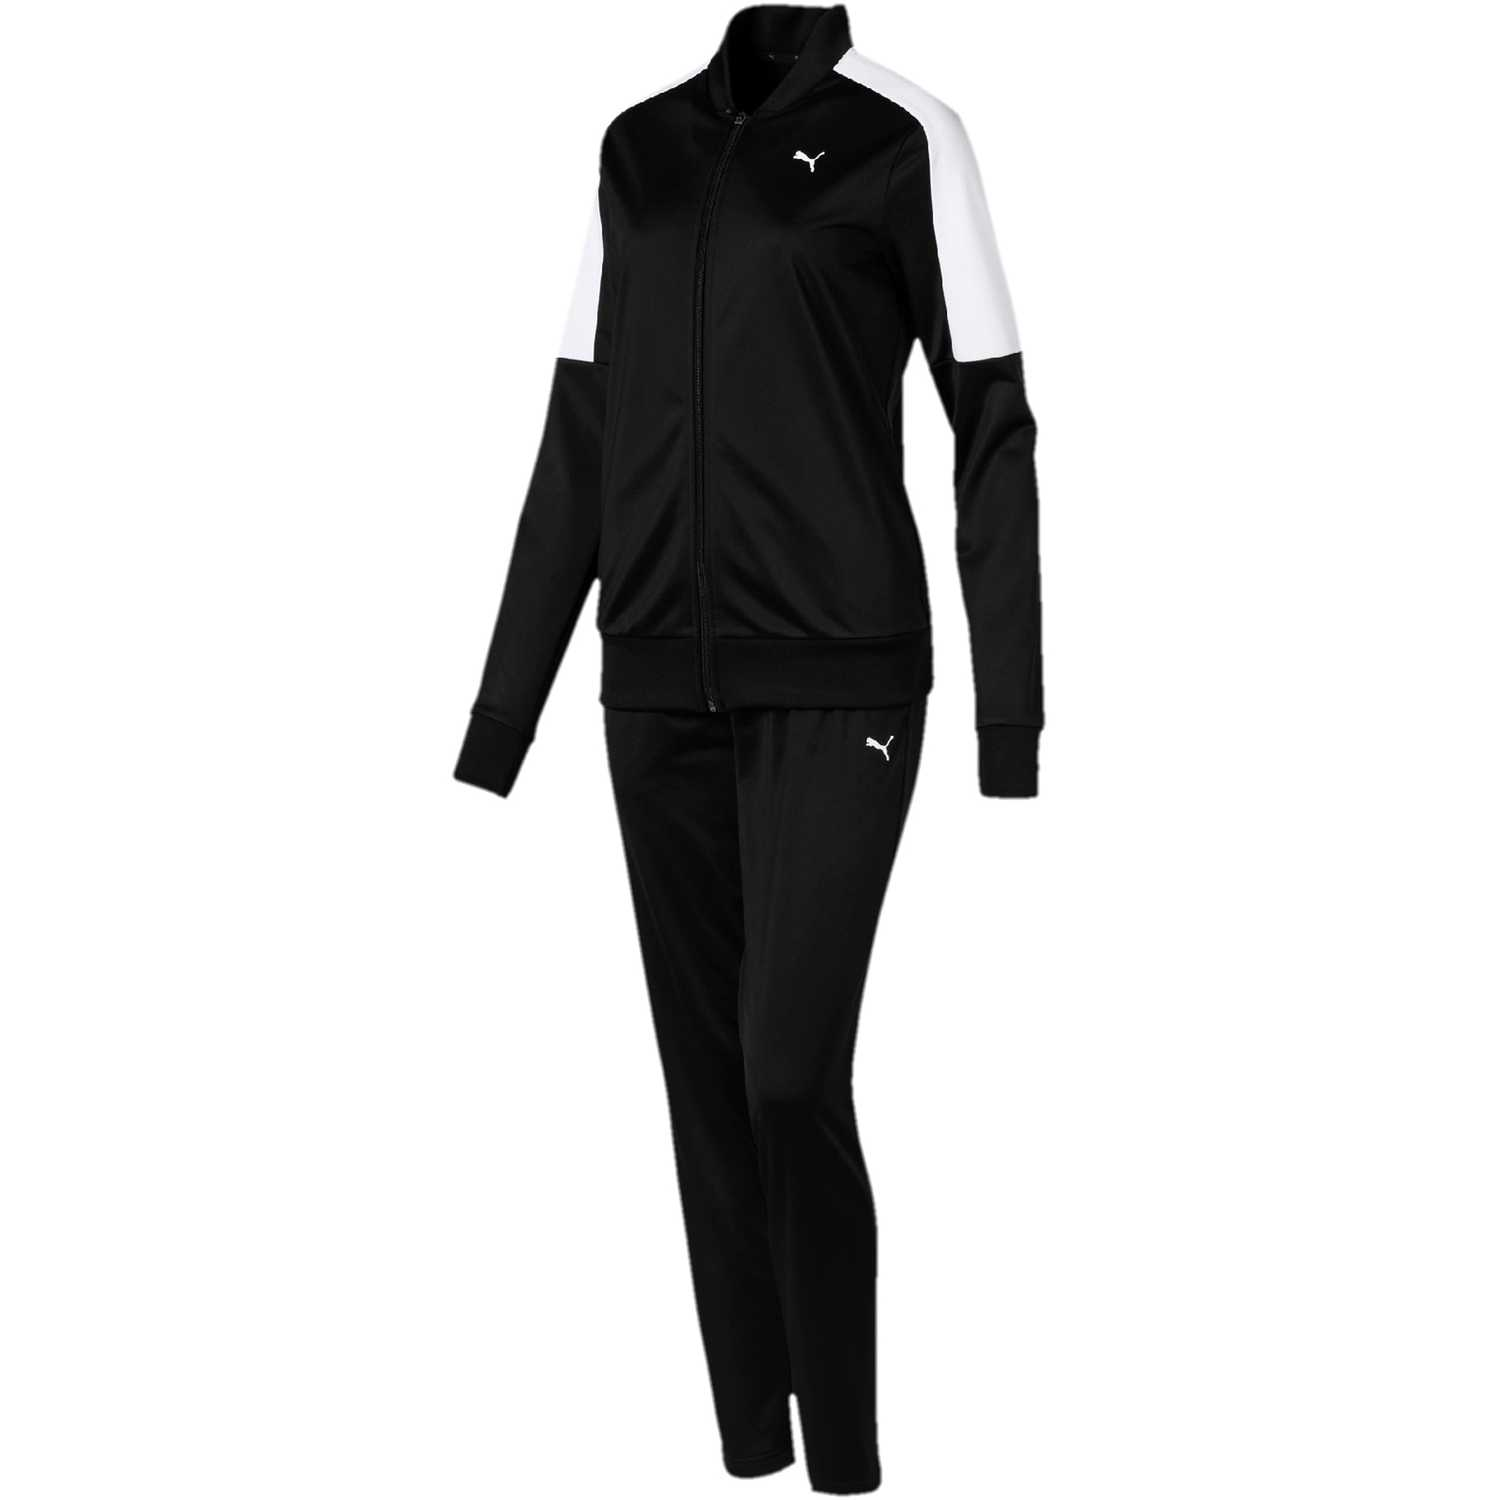 Puma clean tricot suit op Negro / blanco Sets Deportivos Tops y Bottoms